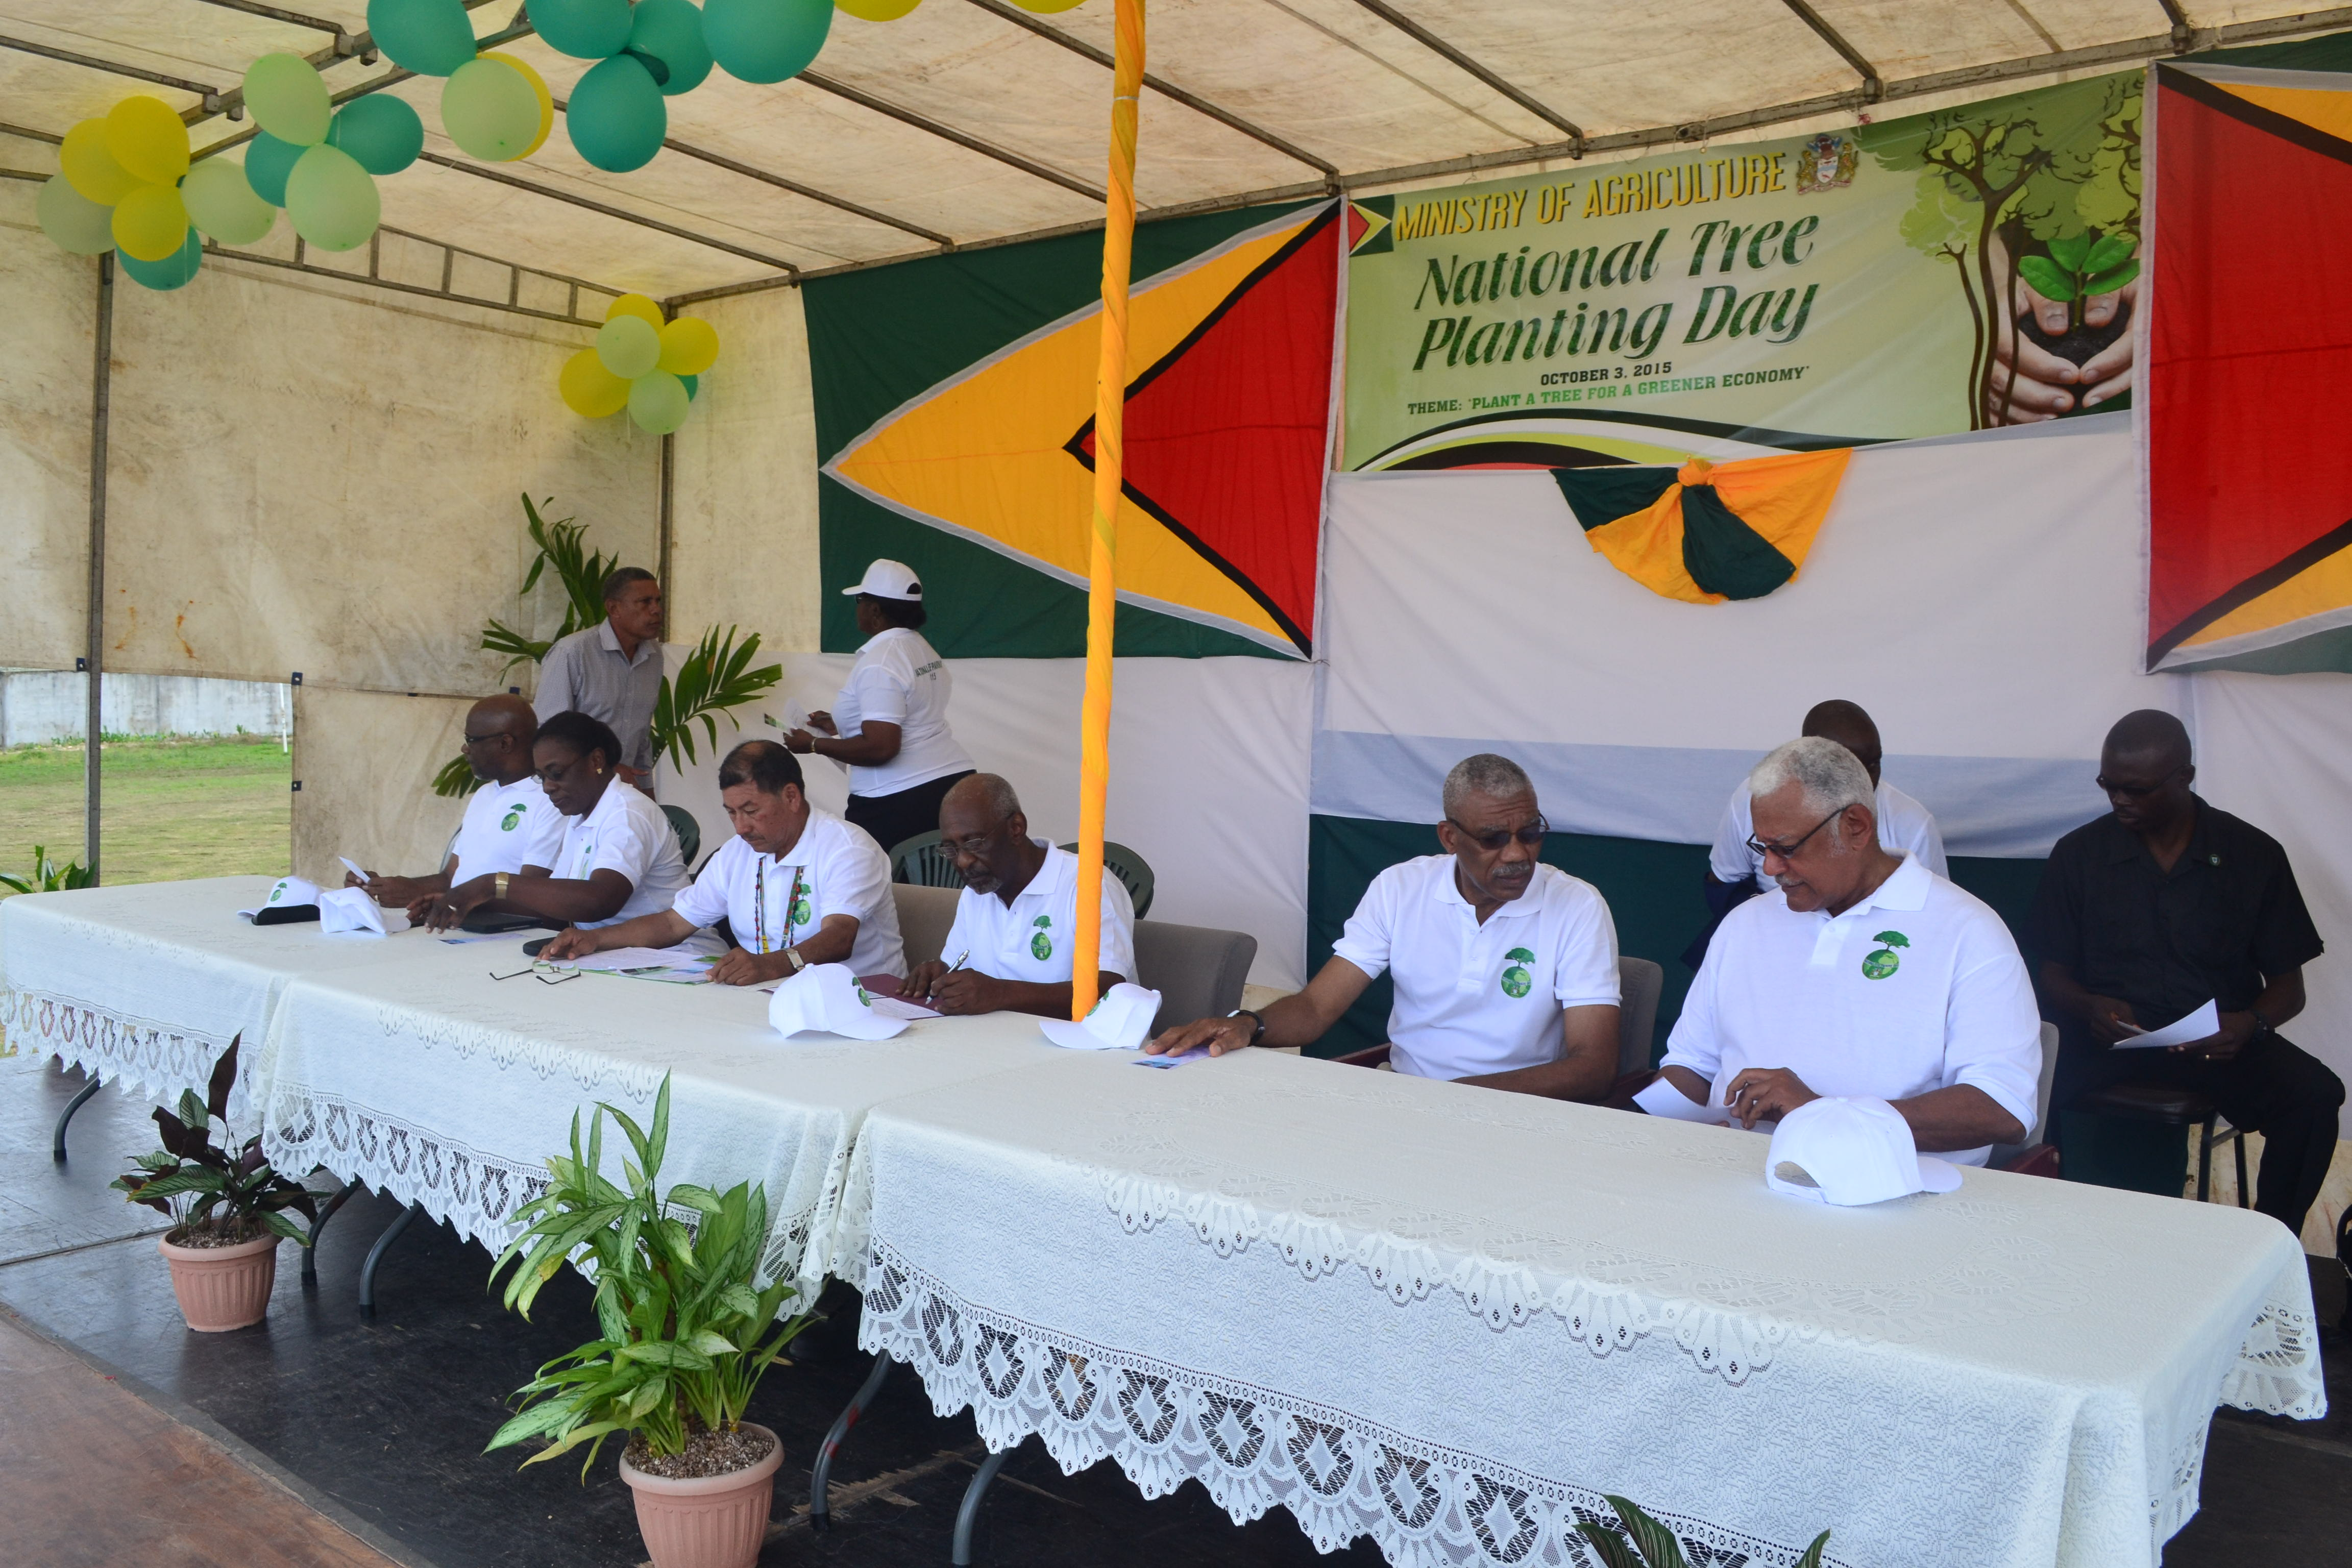 Our nation's leaders at the National Tree Planting activity in Bartica